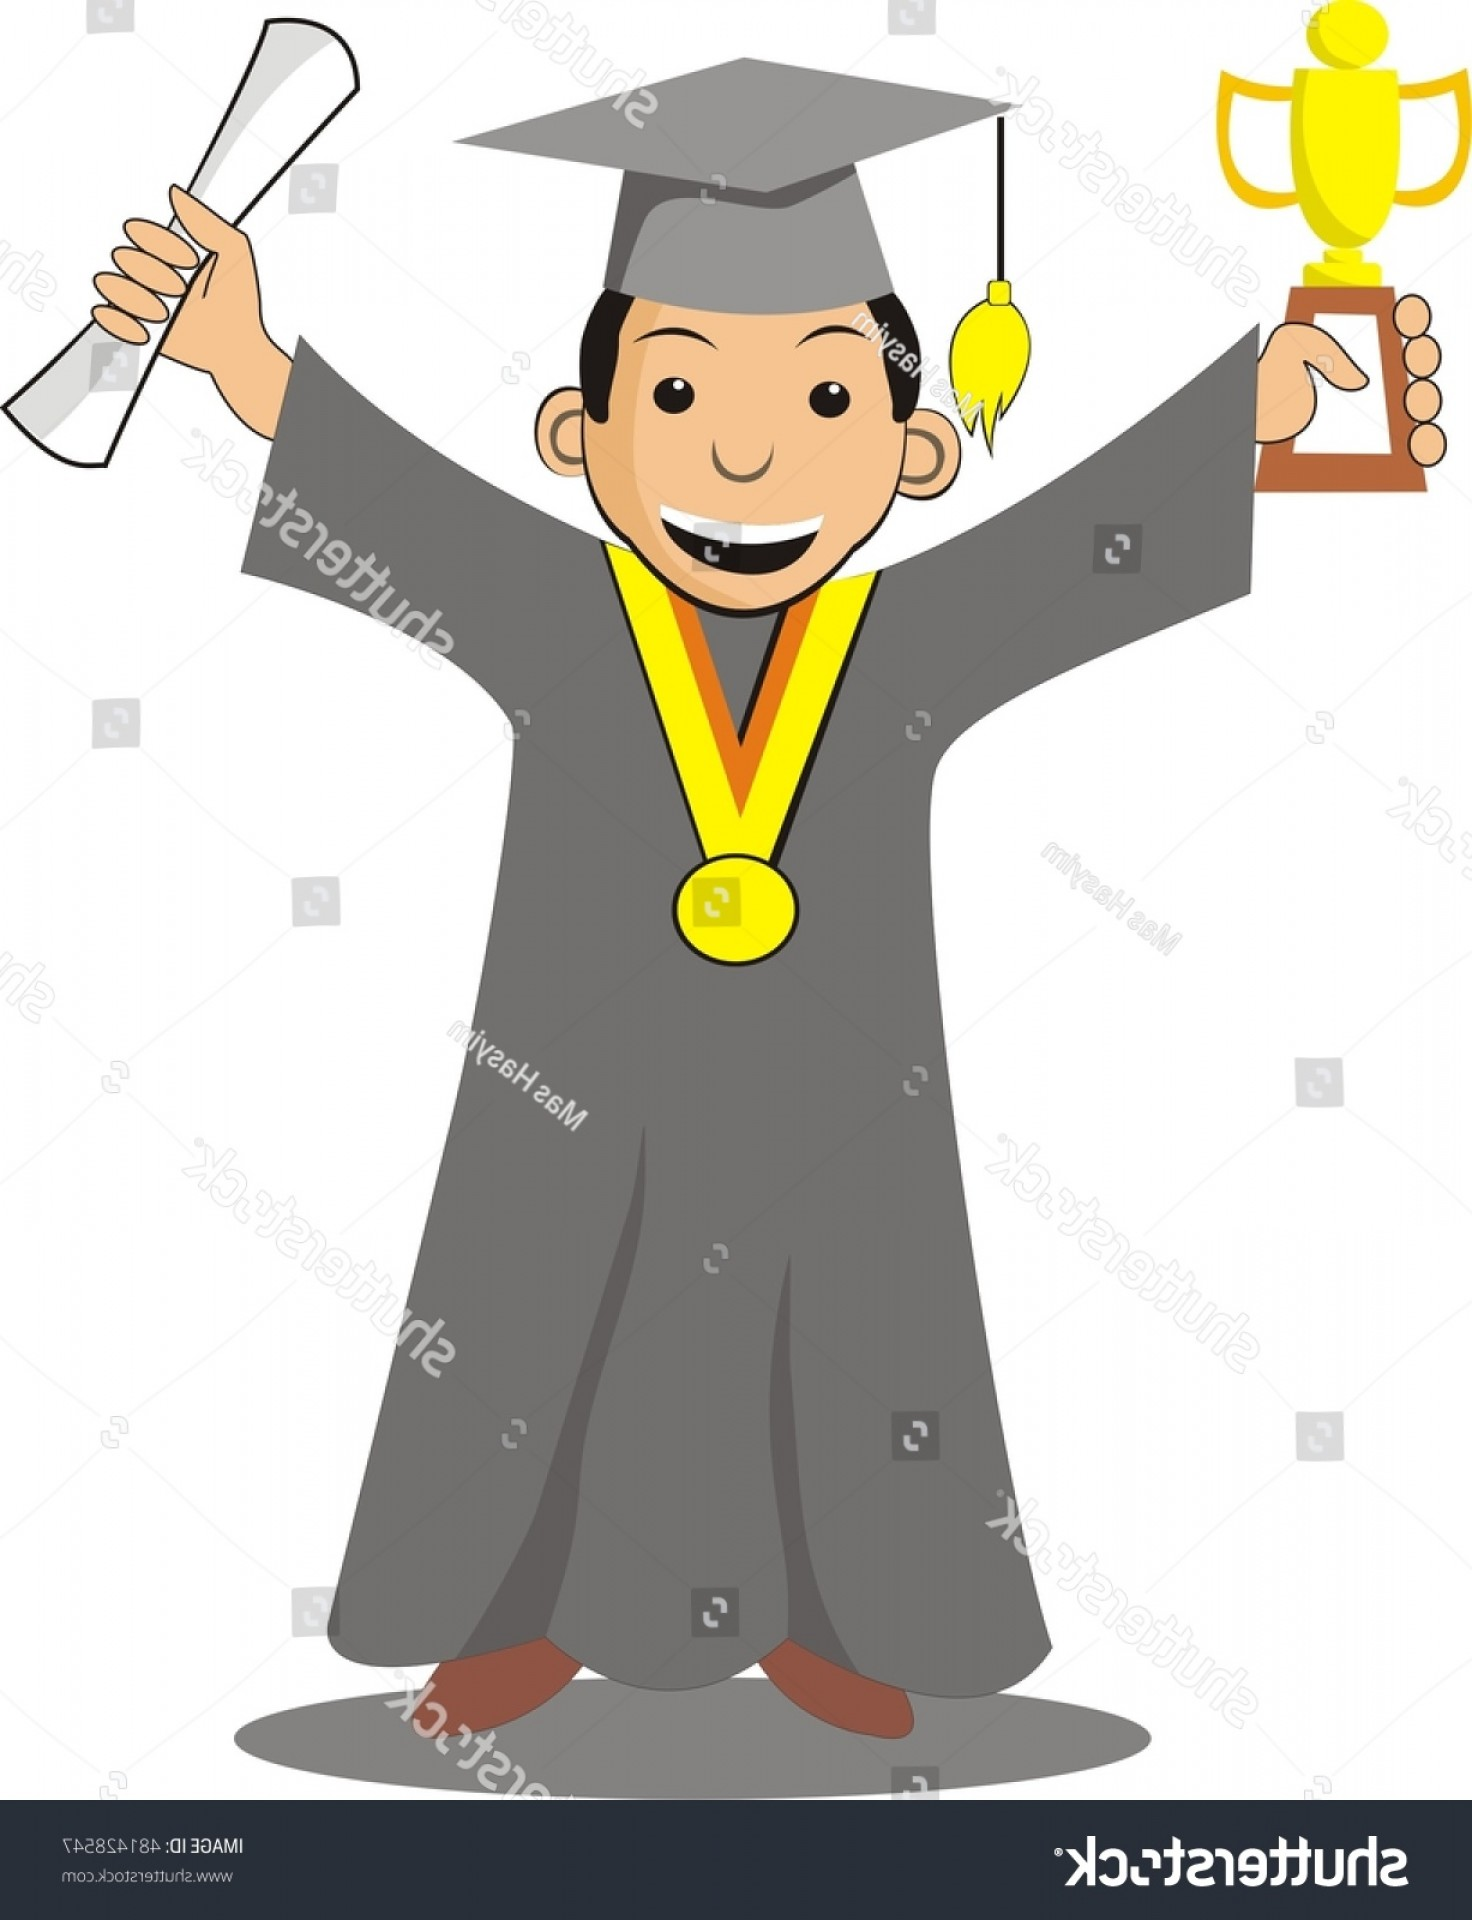 Standing Diploma Vector: Graduation Standing Holding Trophy Diploma